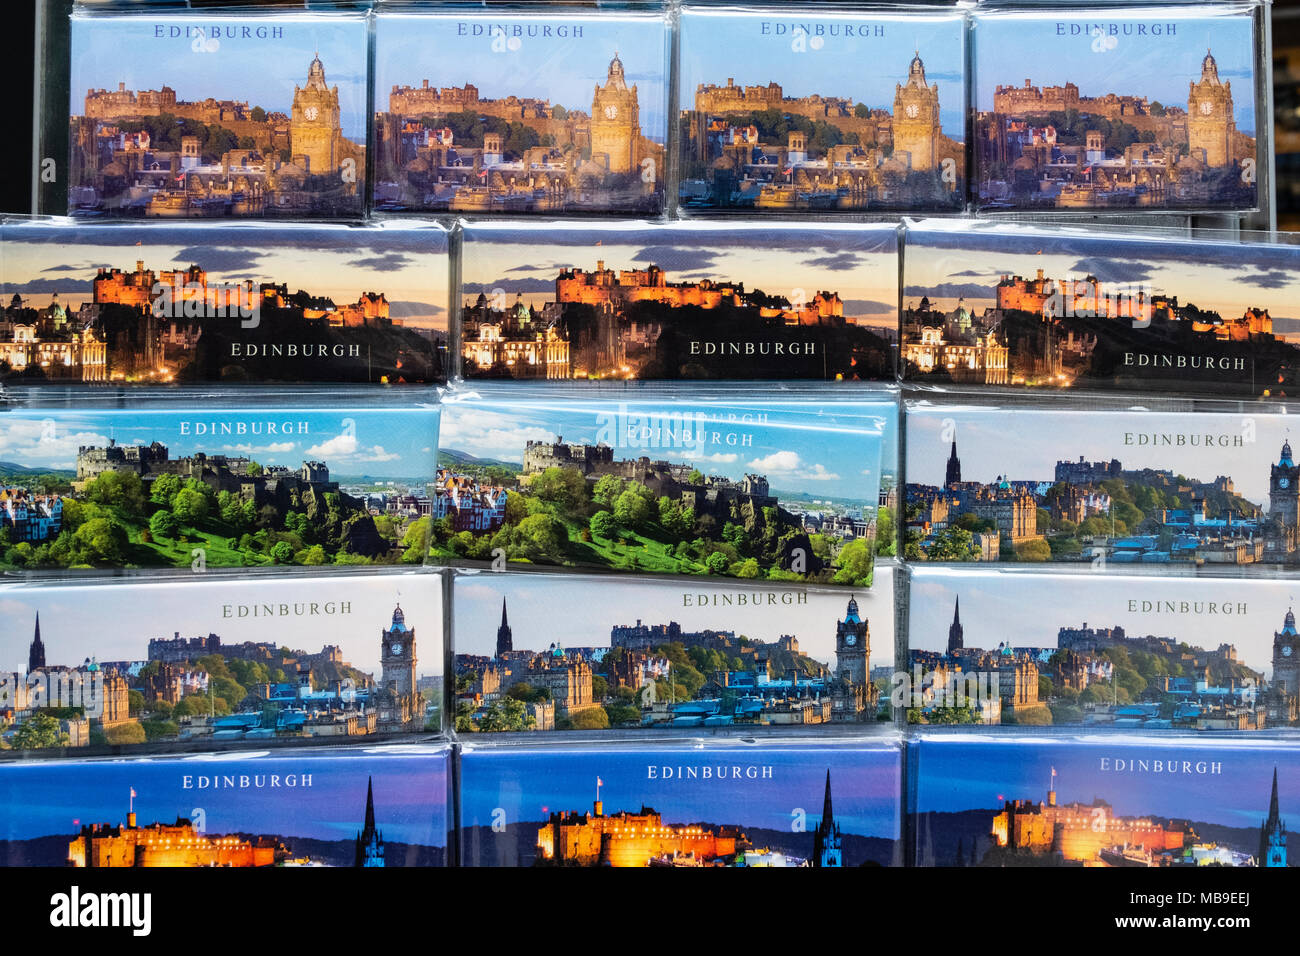 Detail of tourist fridge magnets with views of Edinburgh for sale in souvenir shop on Royal Mile in Edinburgh, Scotland, United Kingdom - Stock Image